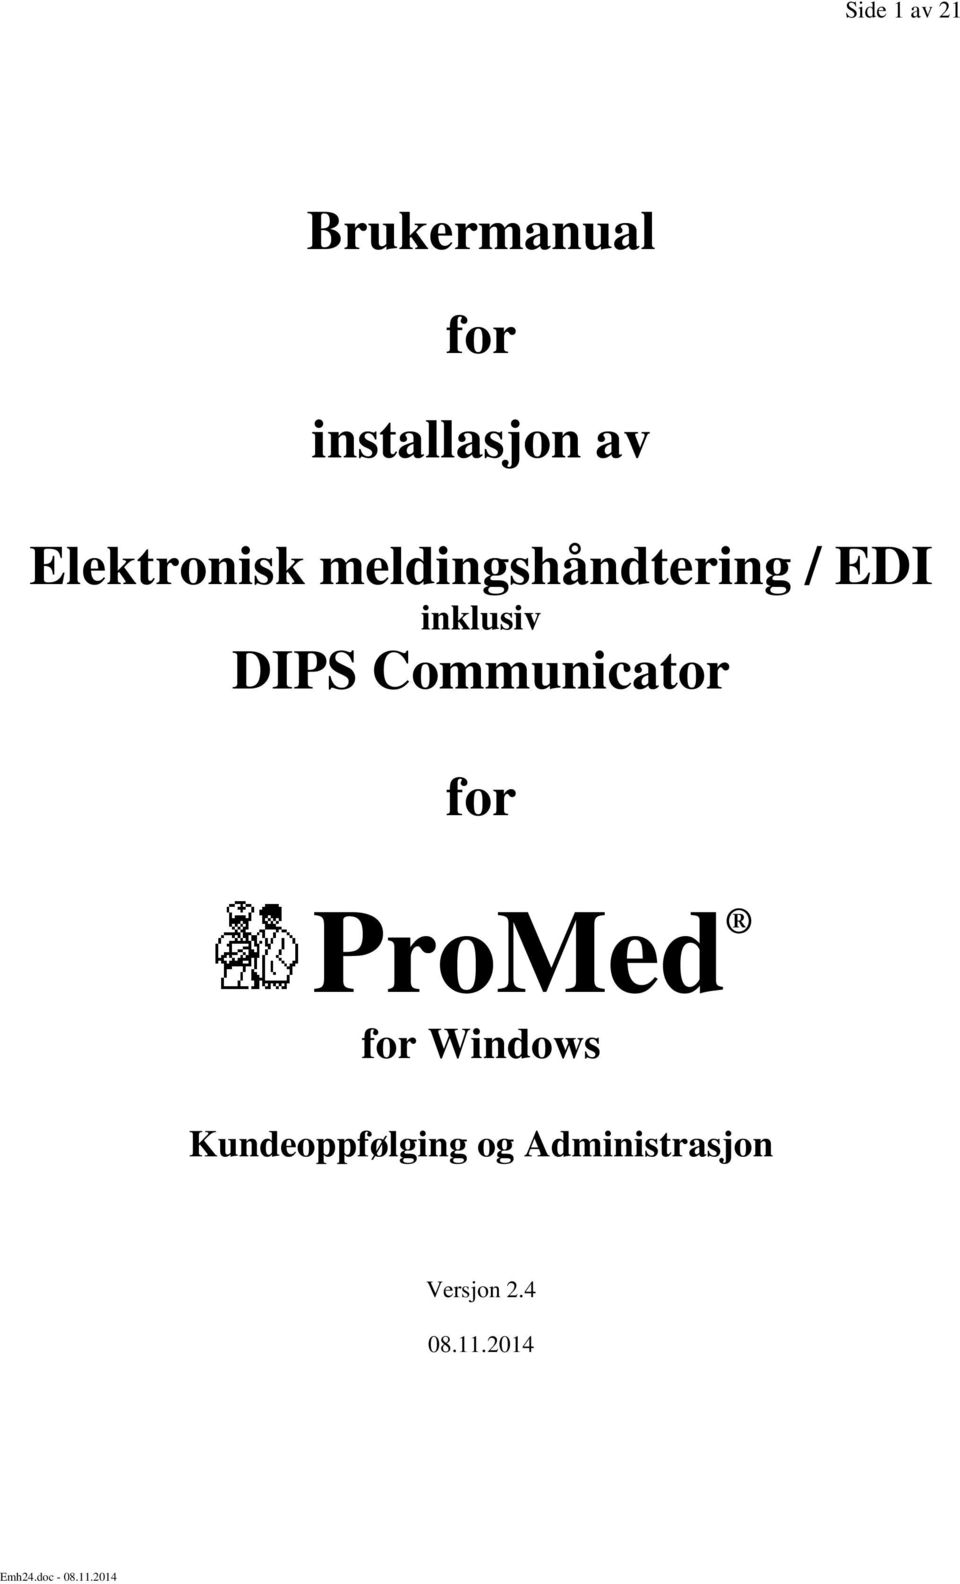 DIPS Communicator for ProMed for Windows